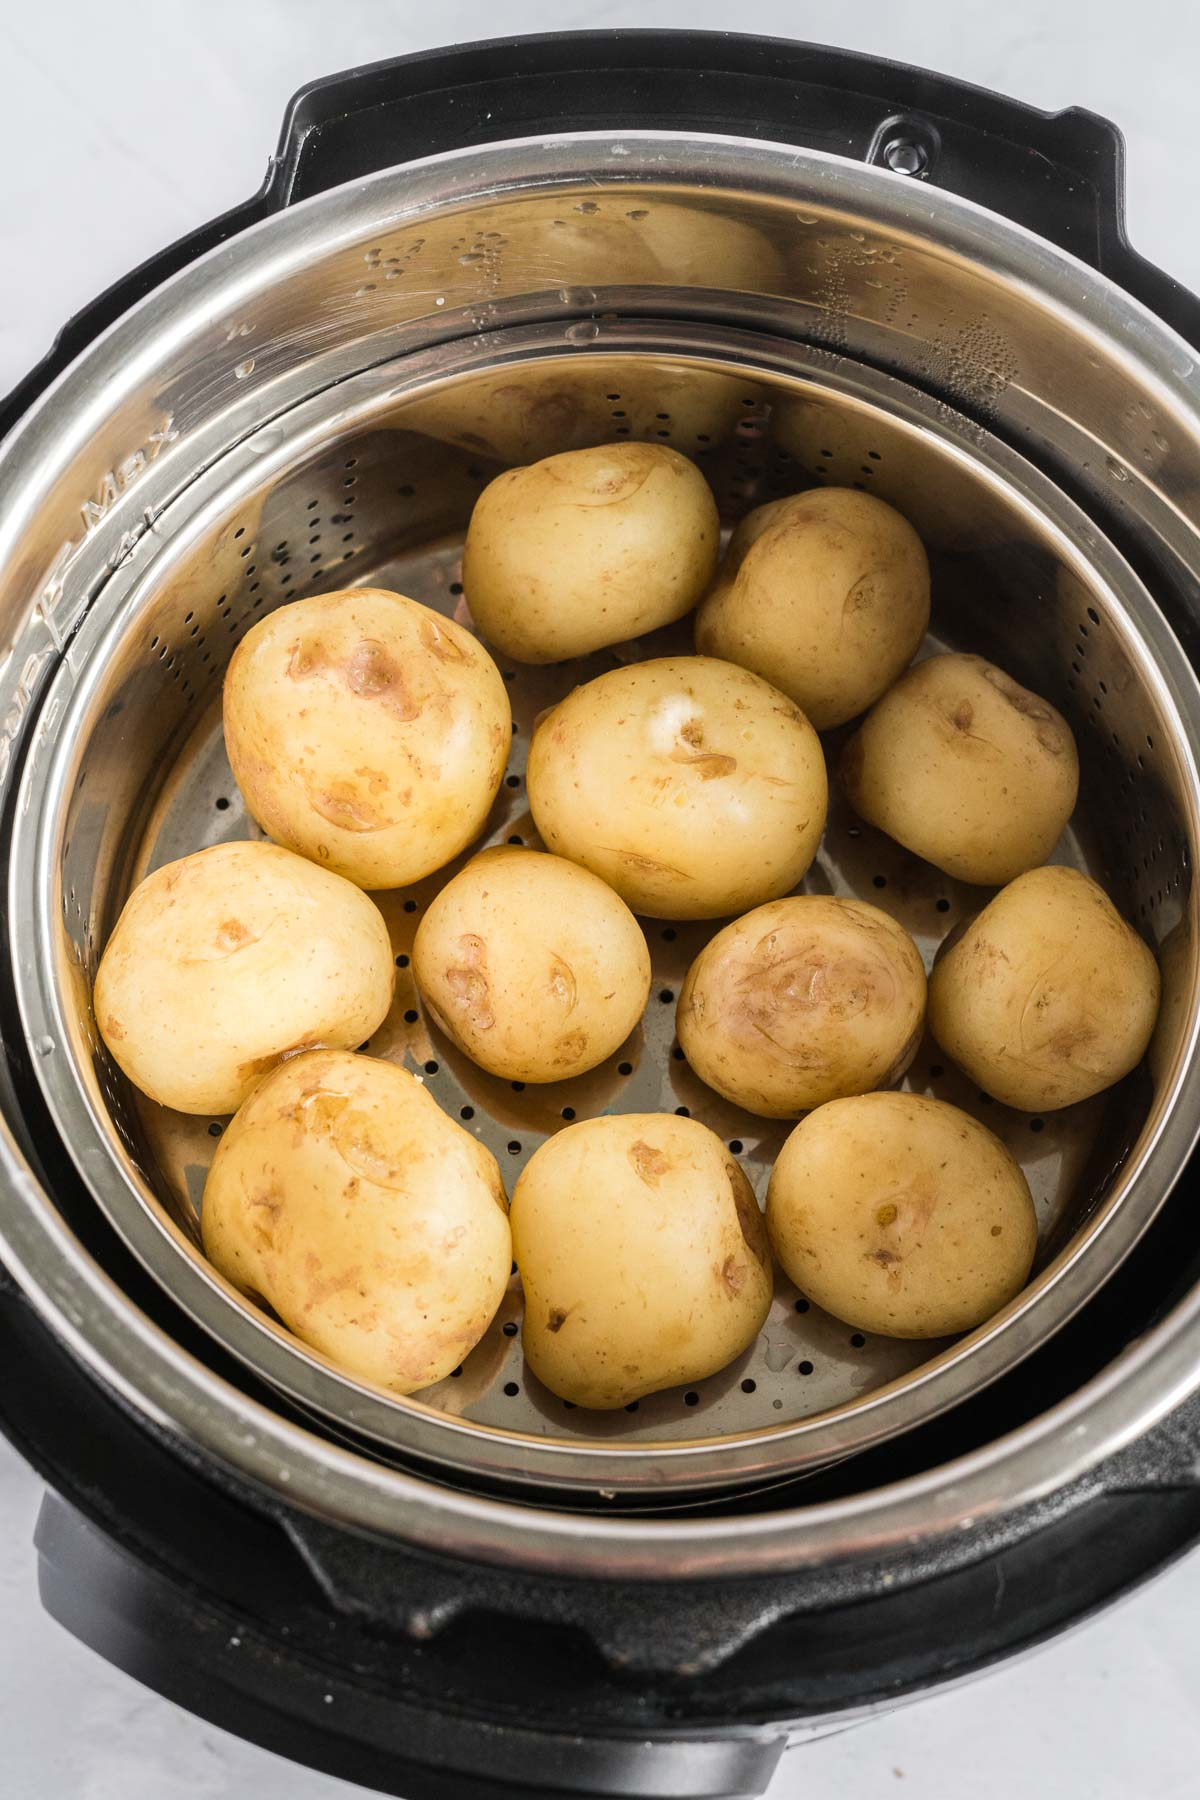 Baby potatoes in a steamer basket inside of an instant pot.